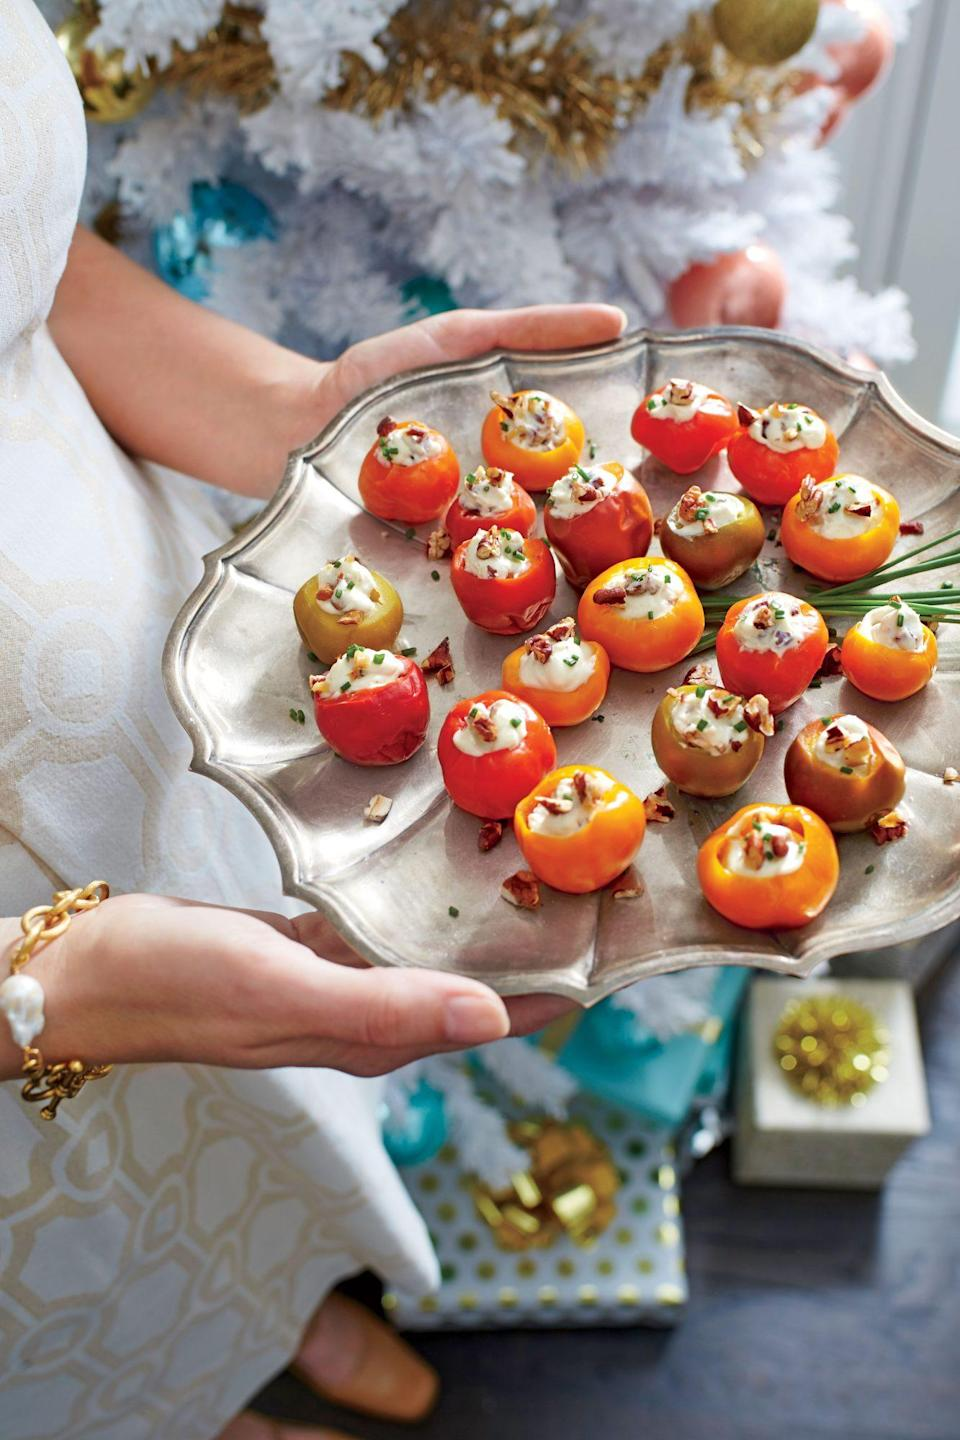 """<p><strong>Recipe: <a href=""""https://www.southernliving.com/recipes/blue-cheese-and-pecan-stuffed-cherry-peppers-recipe"""" rel=""""nofollow noopener"""" target=""""_blank"""" data-ylk=""""slk:Blue Cheese-and-Pecan Stuffed Cherry Peppers"""" class=""""link rapid-noclick-resp"""">Blue Cheese-and-Pecan Stuffed Cherry Peppers</a></strong></p> <p>Pickled cherry peppers are sold in jars with the stems and seeds already removed. <strong><br></strong></p>"""